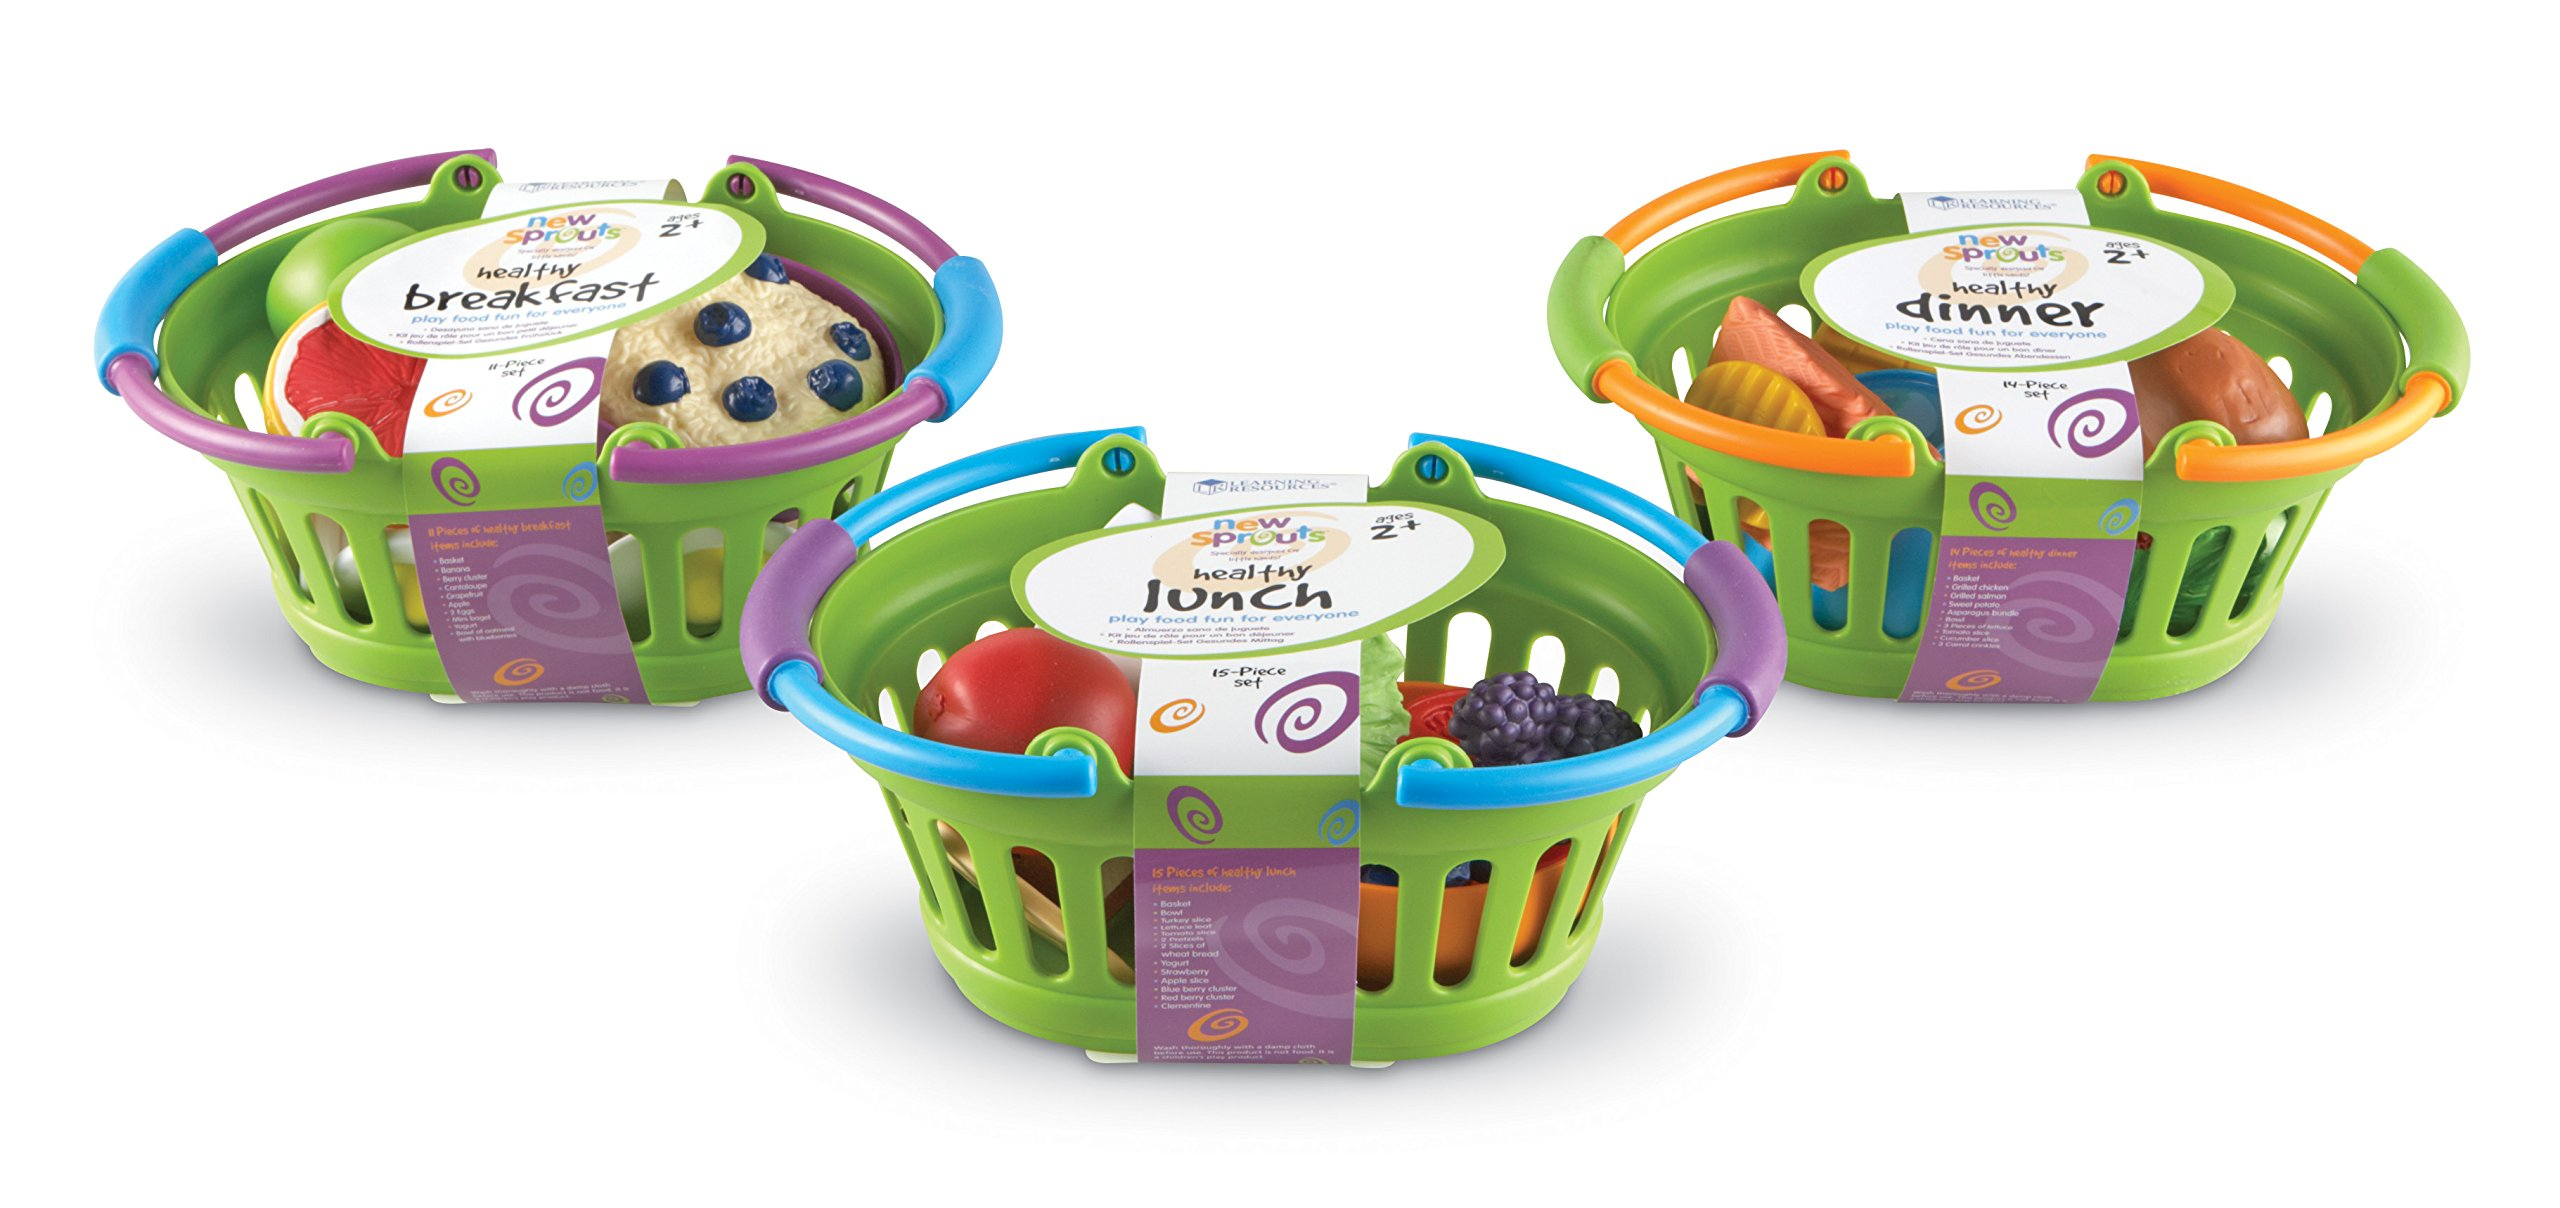 Learning Resources New Sprouts Healthy Foods Basket Bundle, 37 Pieces, Ages 18 mos+